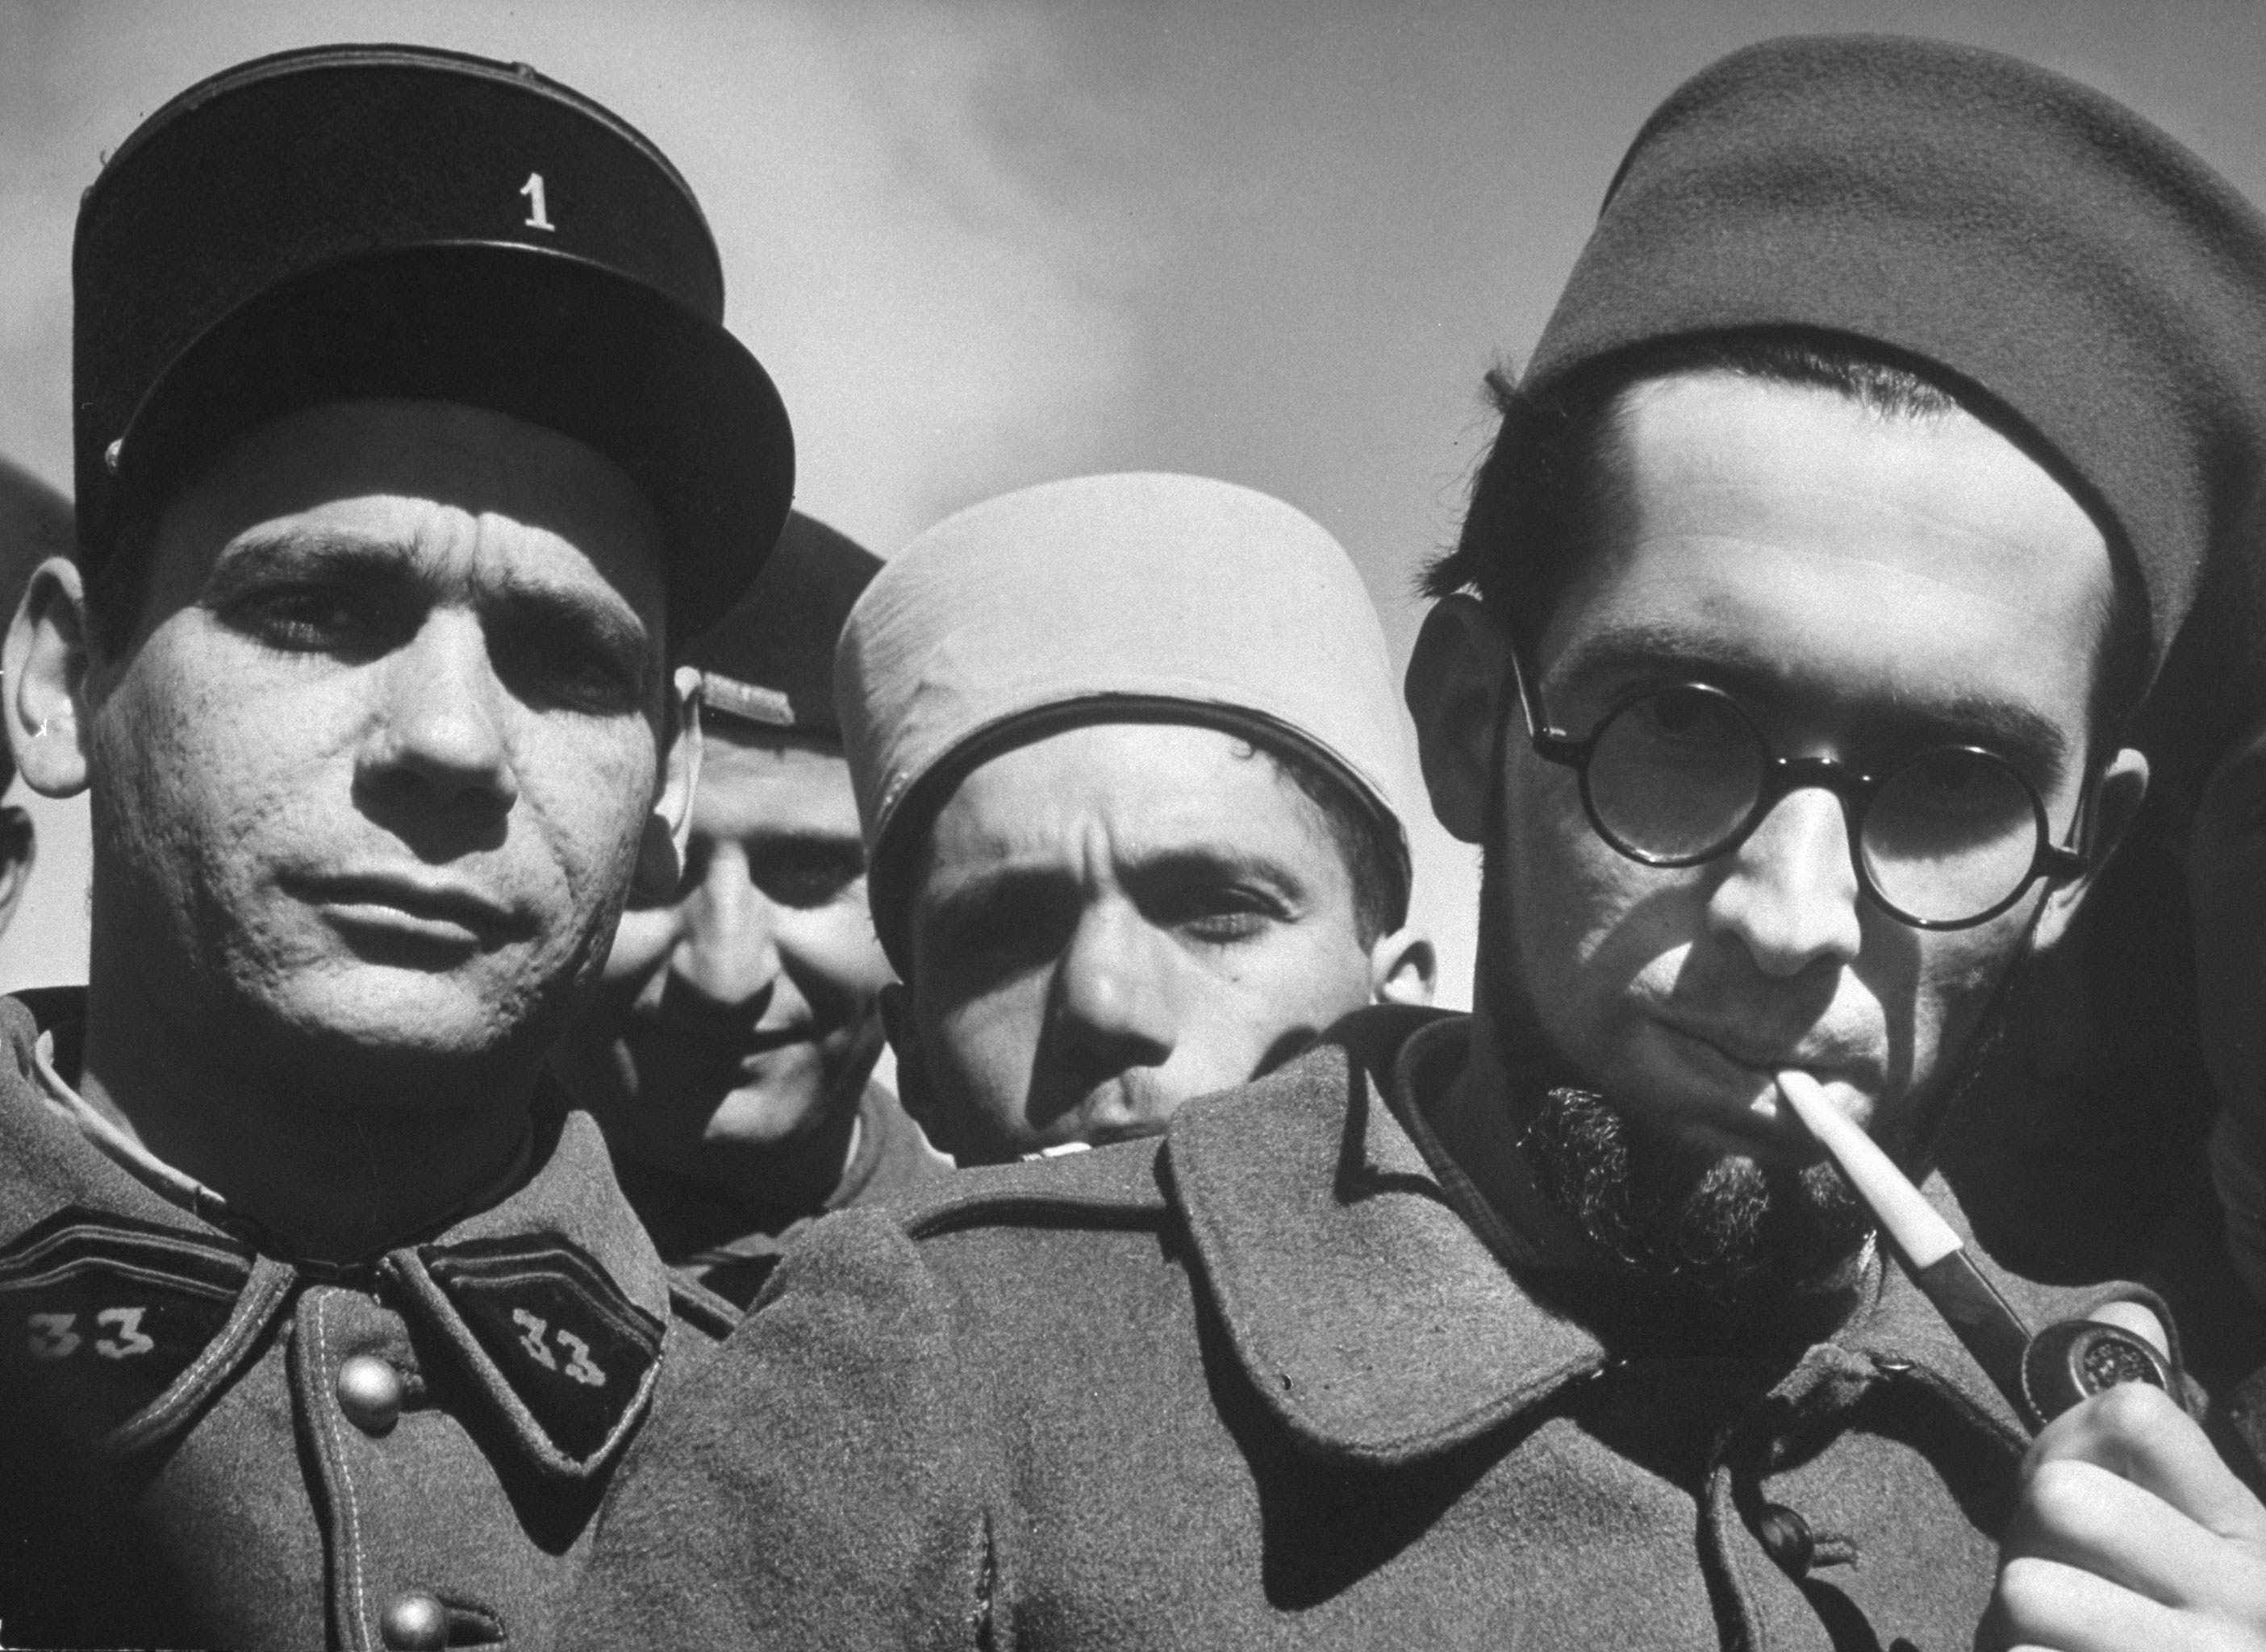 French Foreign Legion soldiers at their outpost at Homs, Syria, 1940.